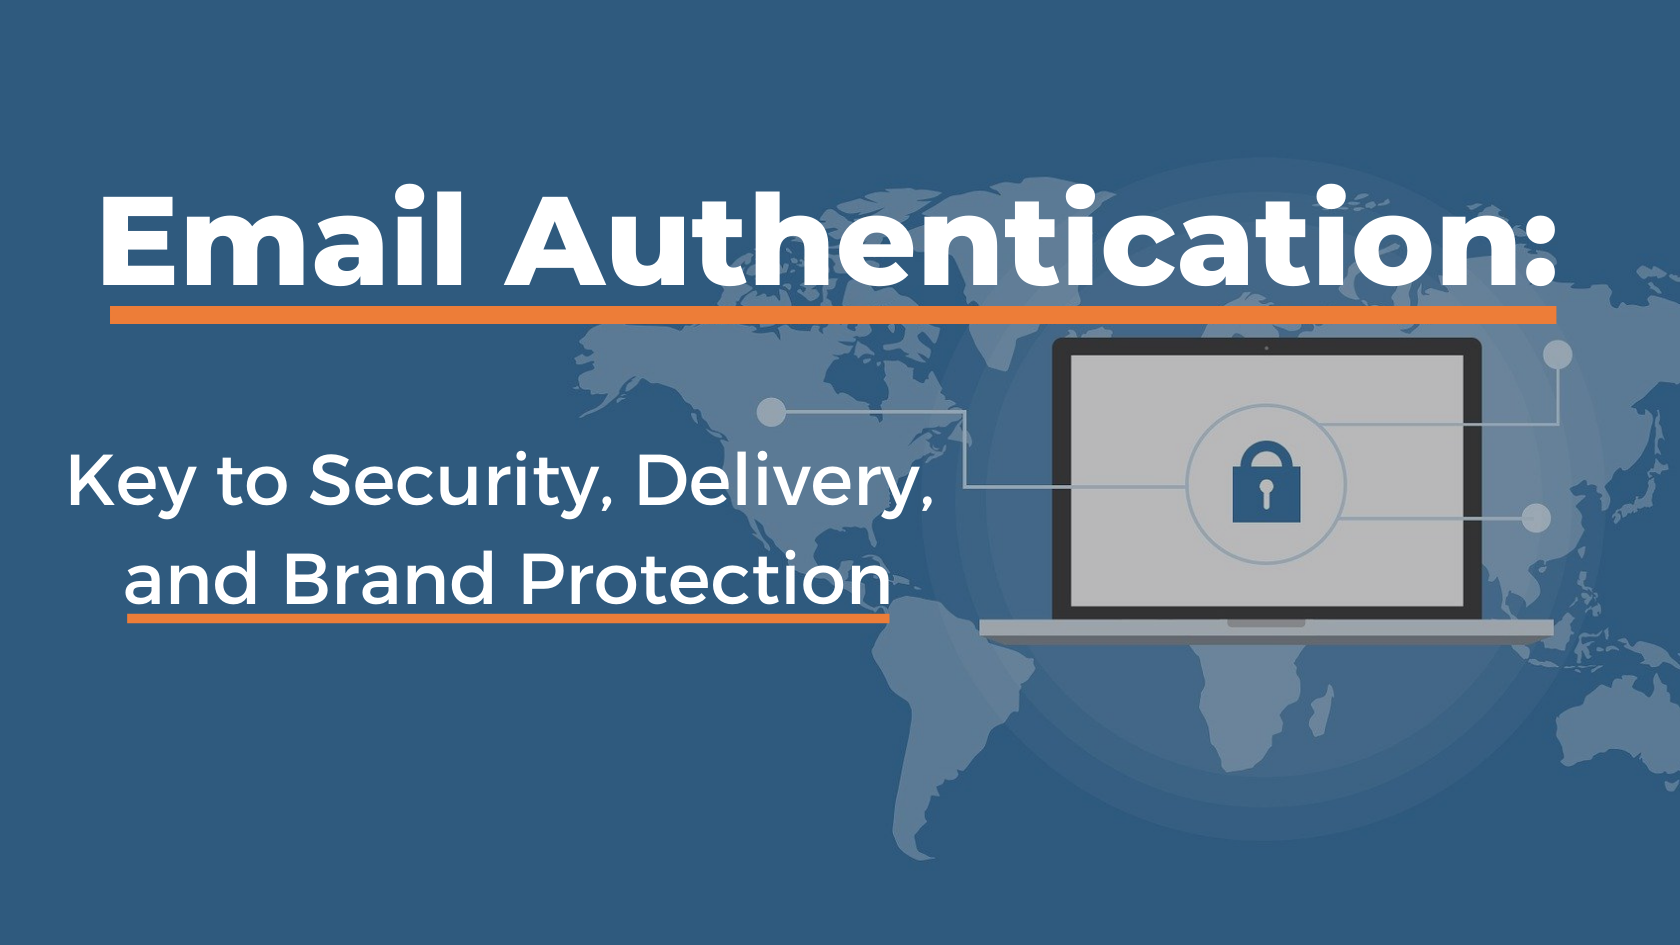 Email Authentication Keys